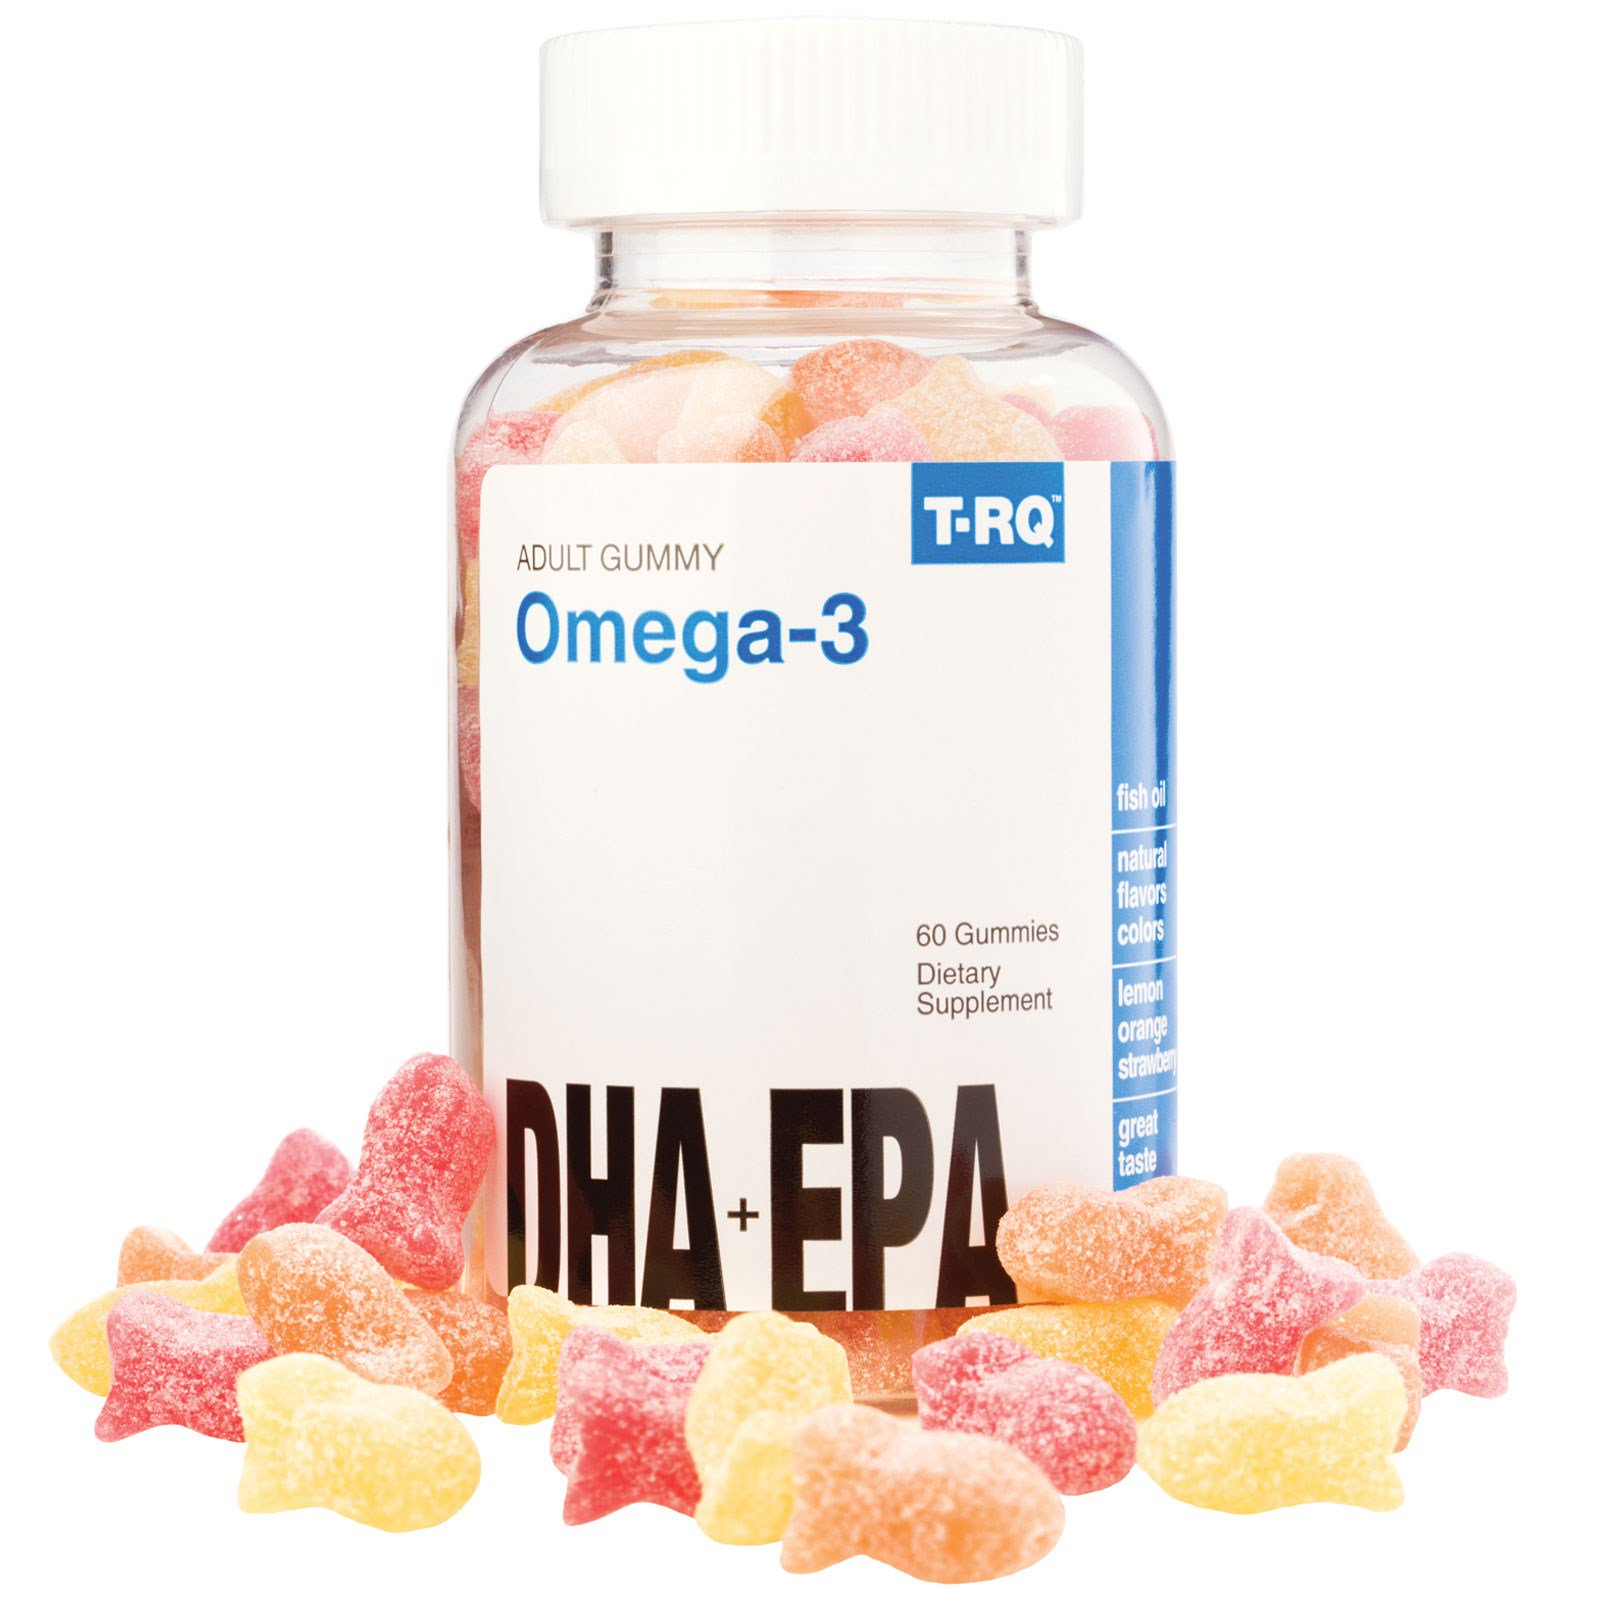 T.RQ, Omega-3, DHA + EPA, Lemon, Orange, Strawberry, 60 Gummies